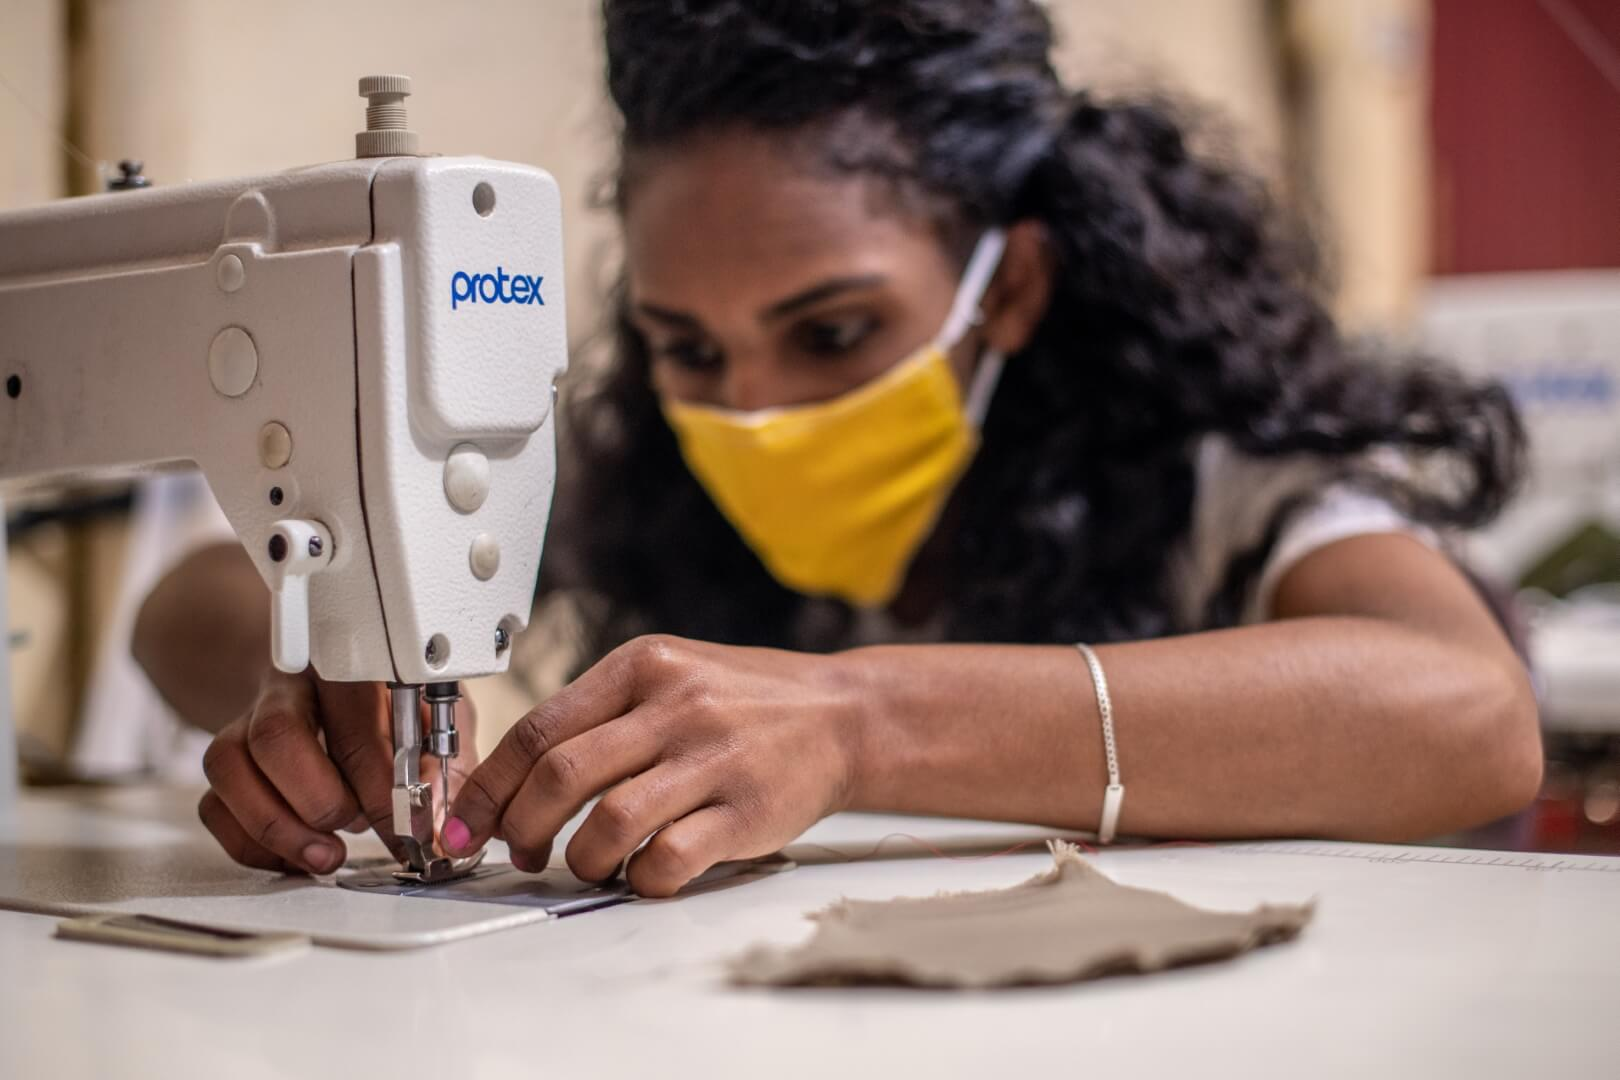 Wubit (23), in Ethiopia, is enthusiastic for the sewing project that's changing her life. Photo: Barnaby Skinner